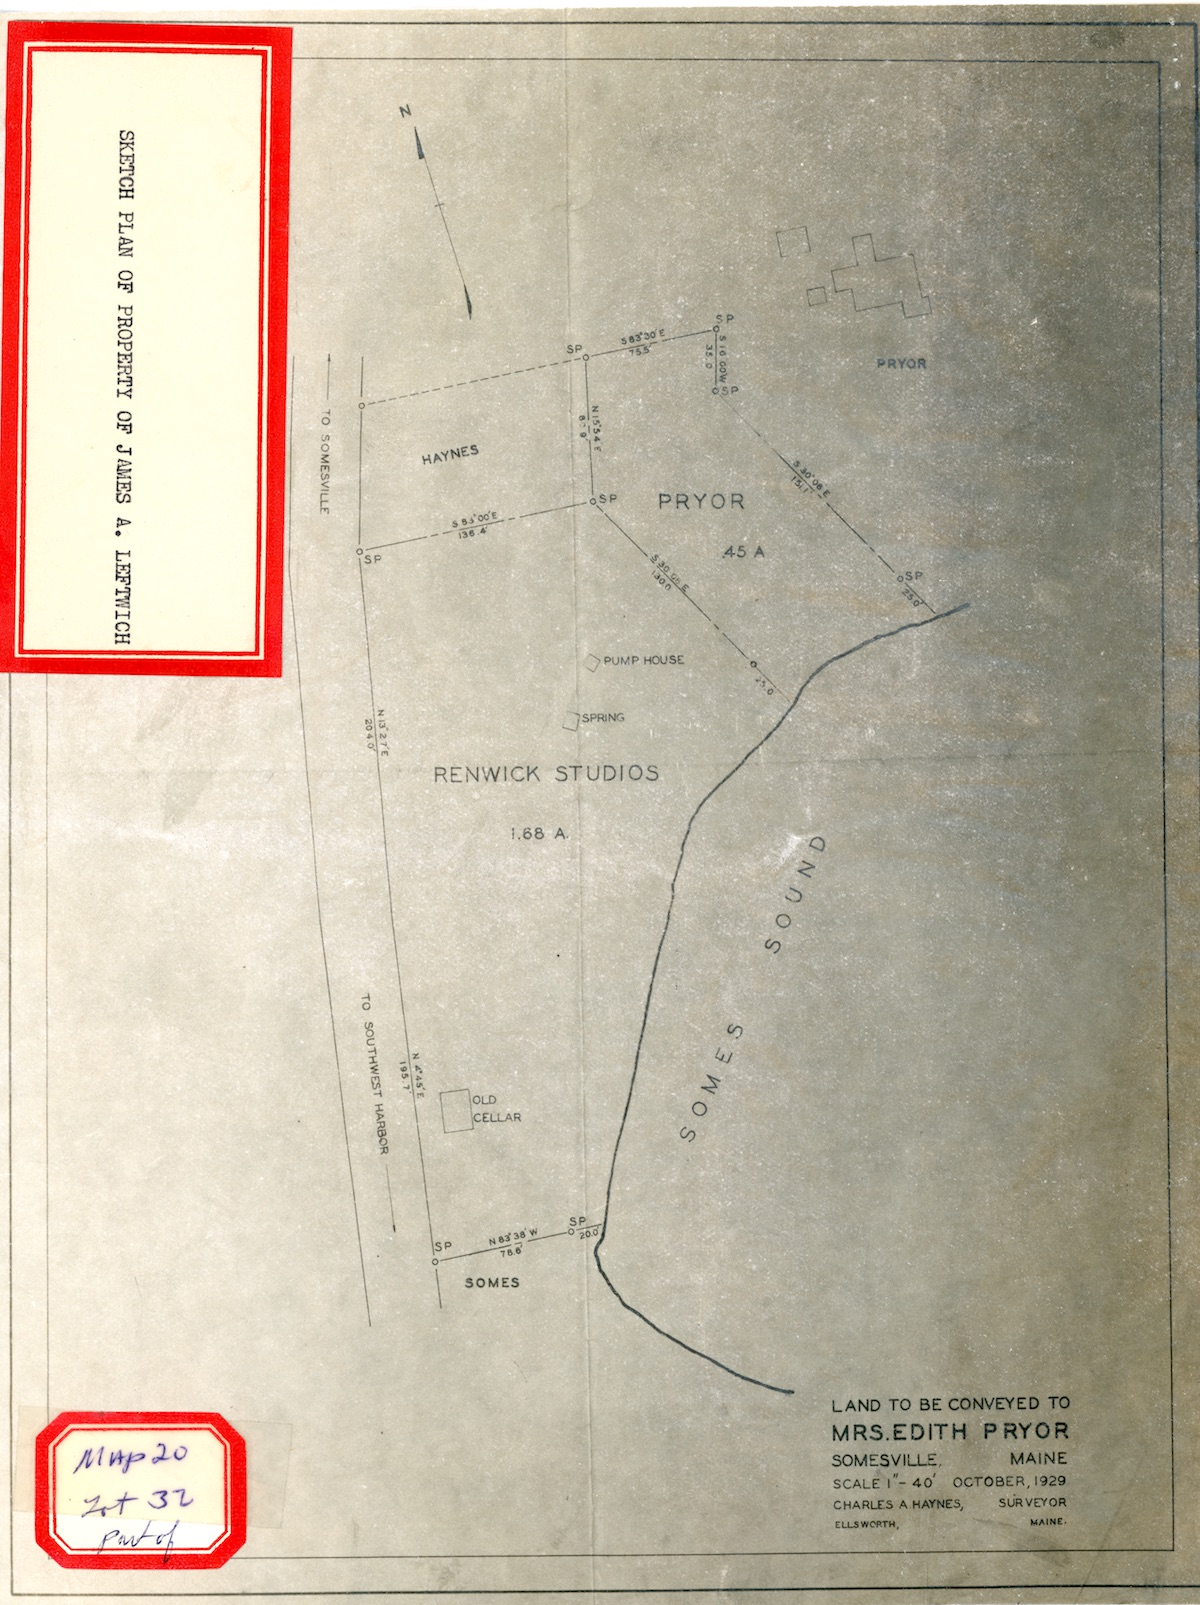 Sketch Plan of Property of James A. Leftwich